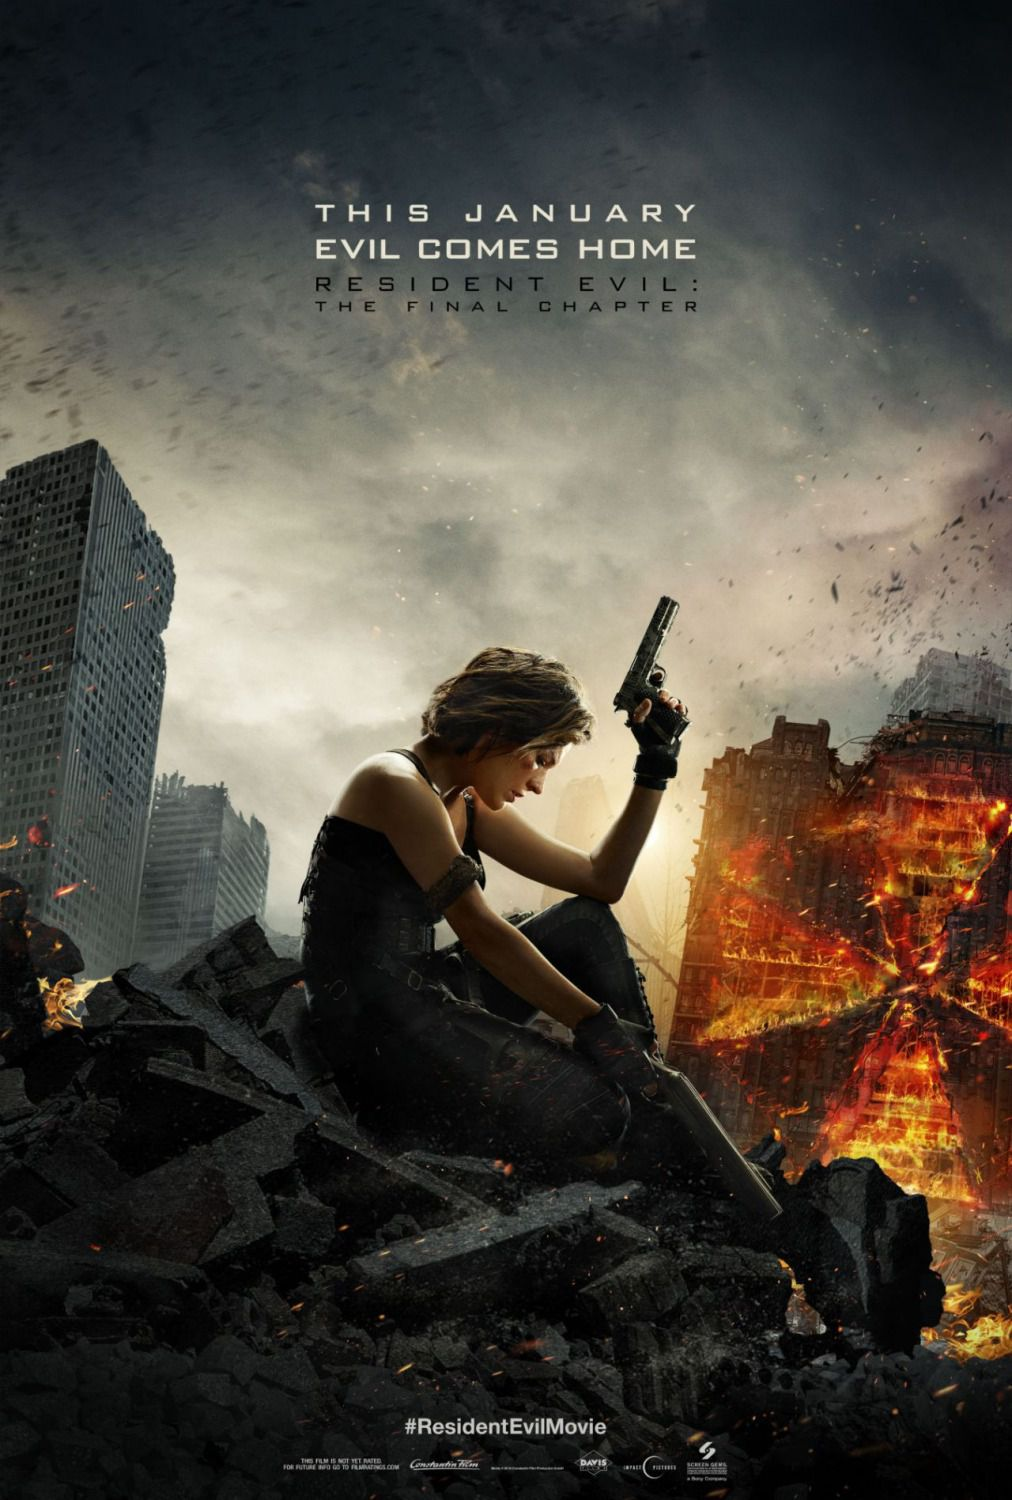 Resident Evil 6 - The Final Chapter (2016) - Alice (Milla Jovovich)